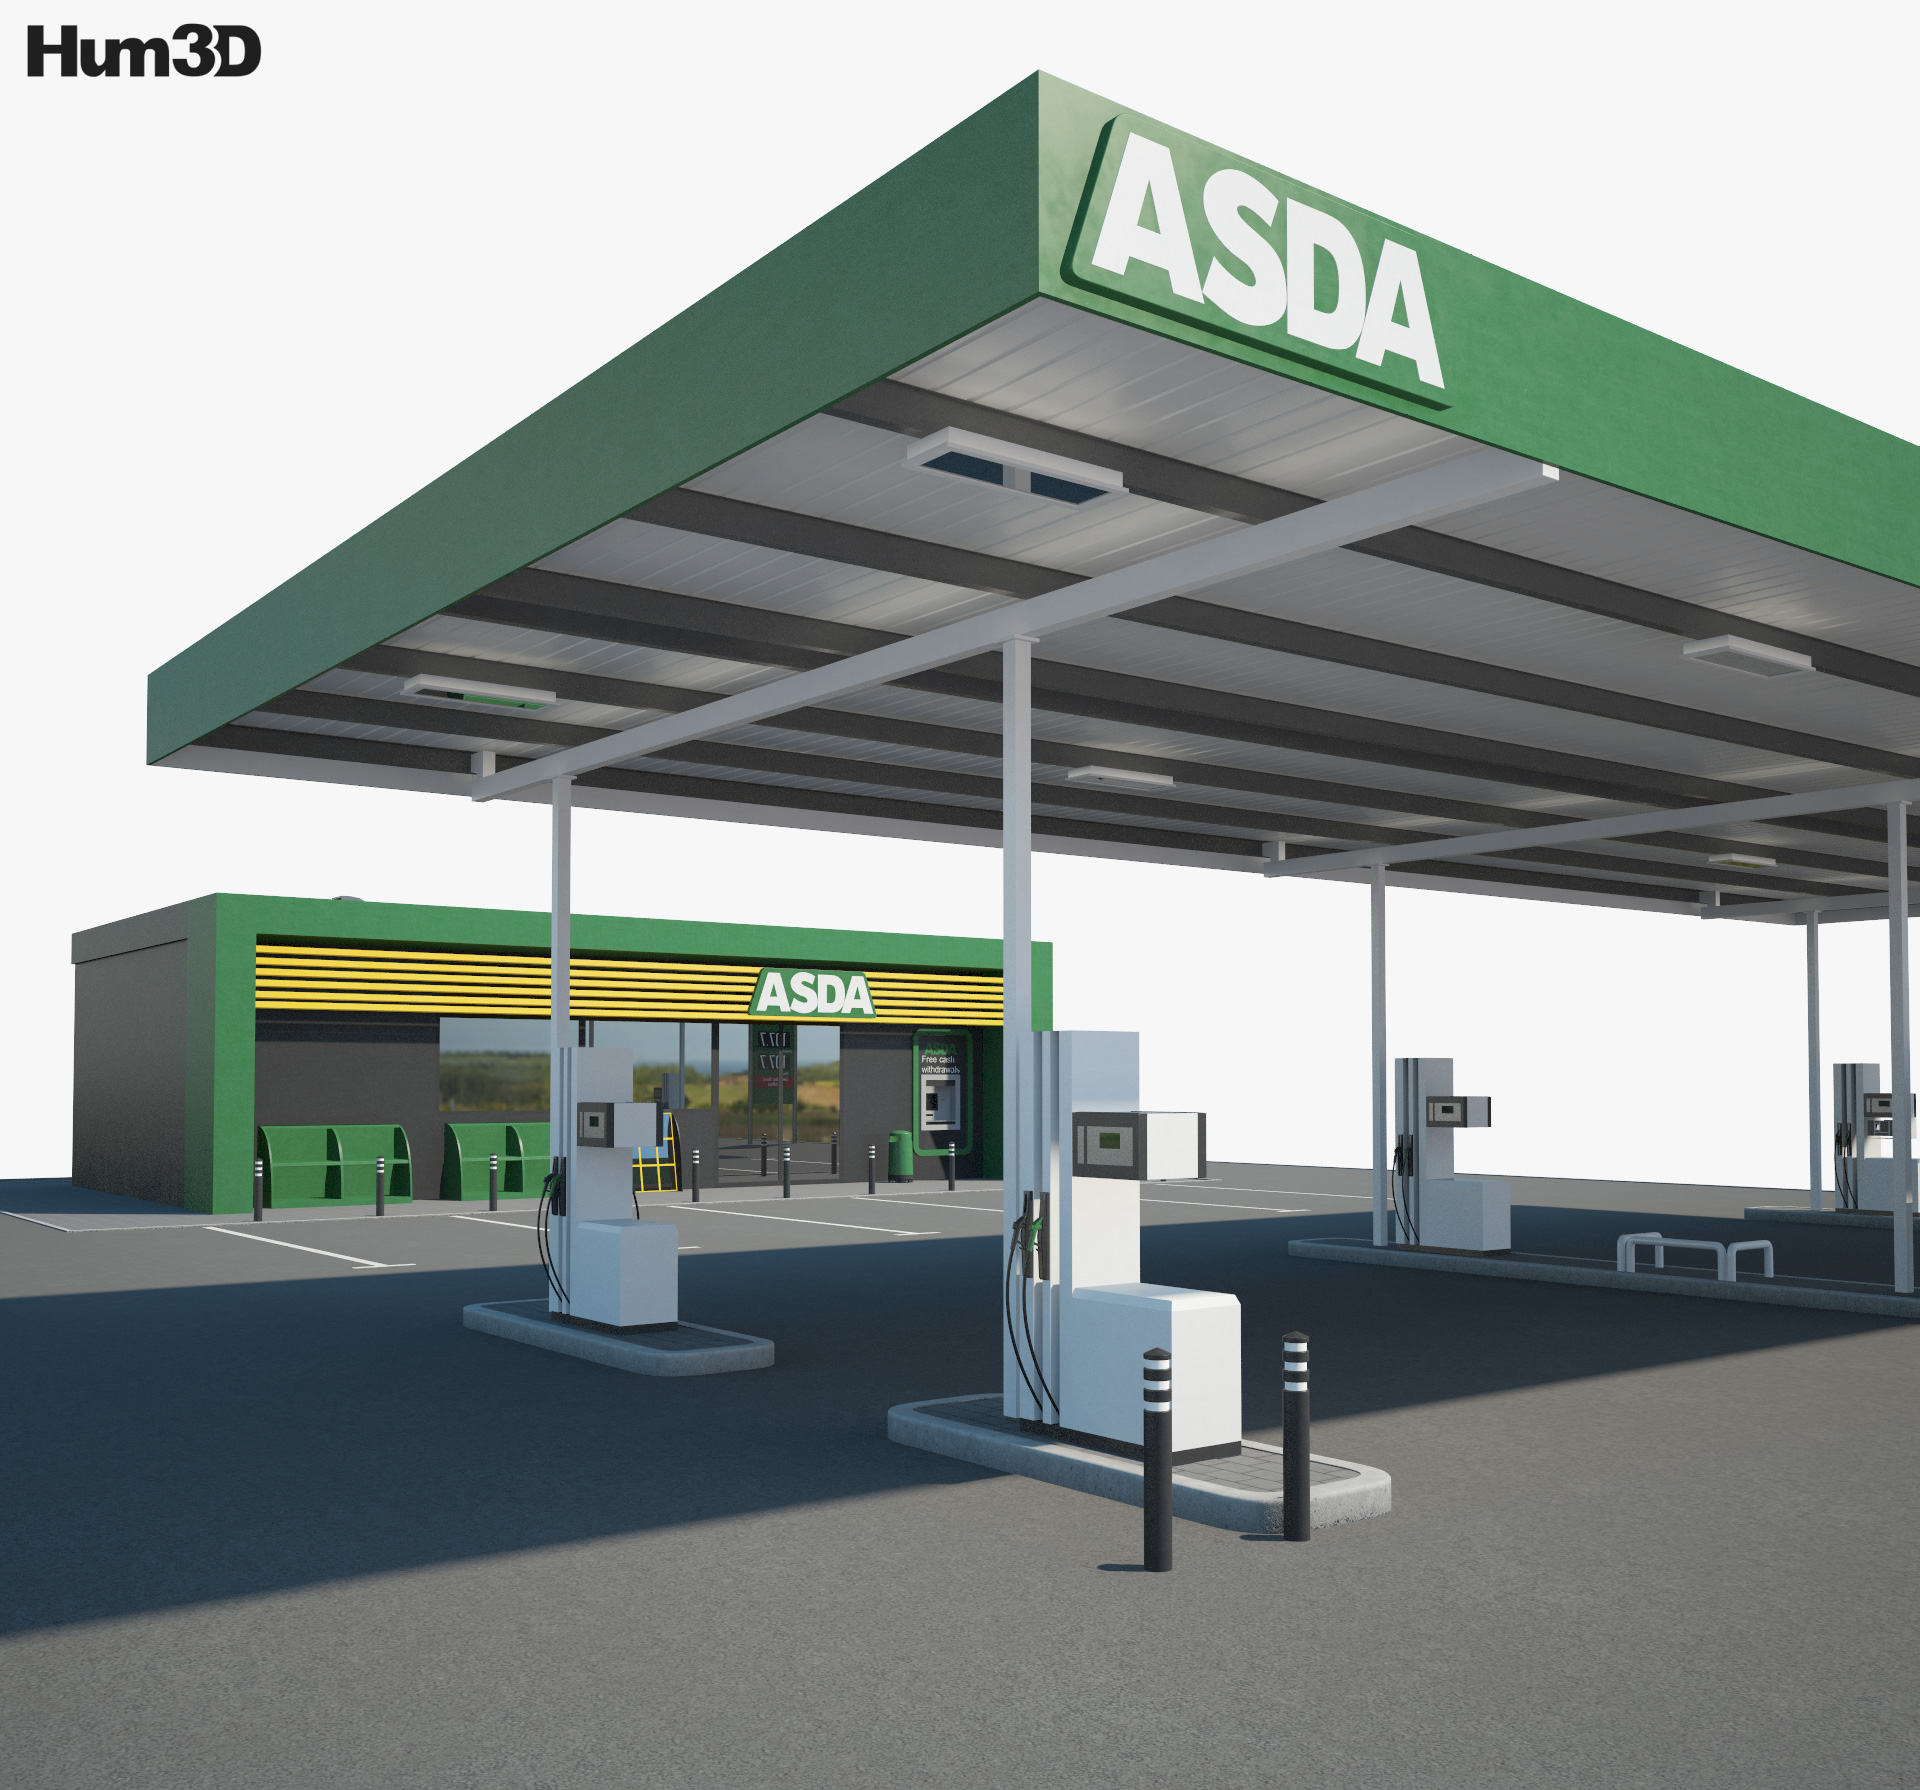 ASDA gas station 001 3d model